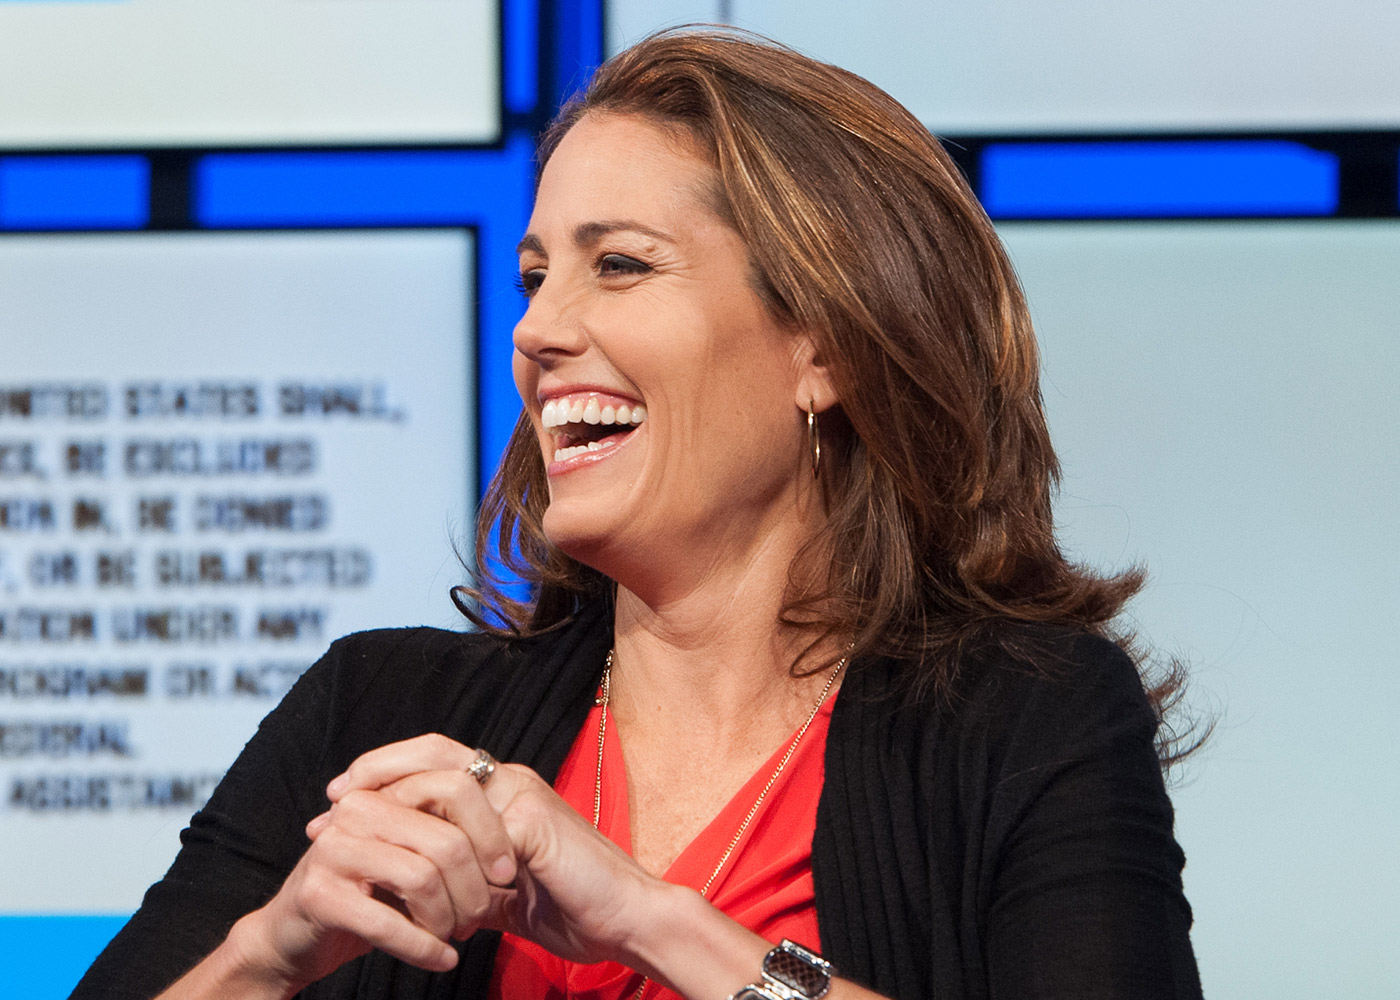 Negotiate Like a Pro, Whatever Your Field: Top 5 Tips from Julie Foudy